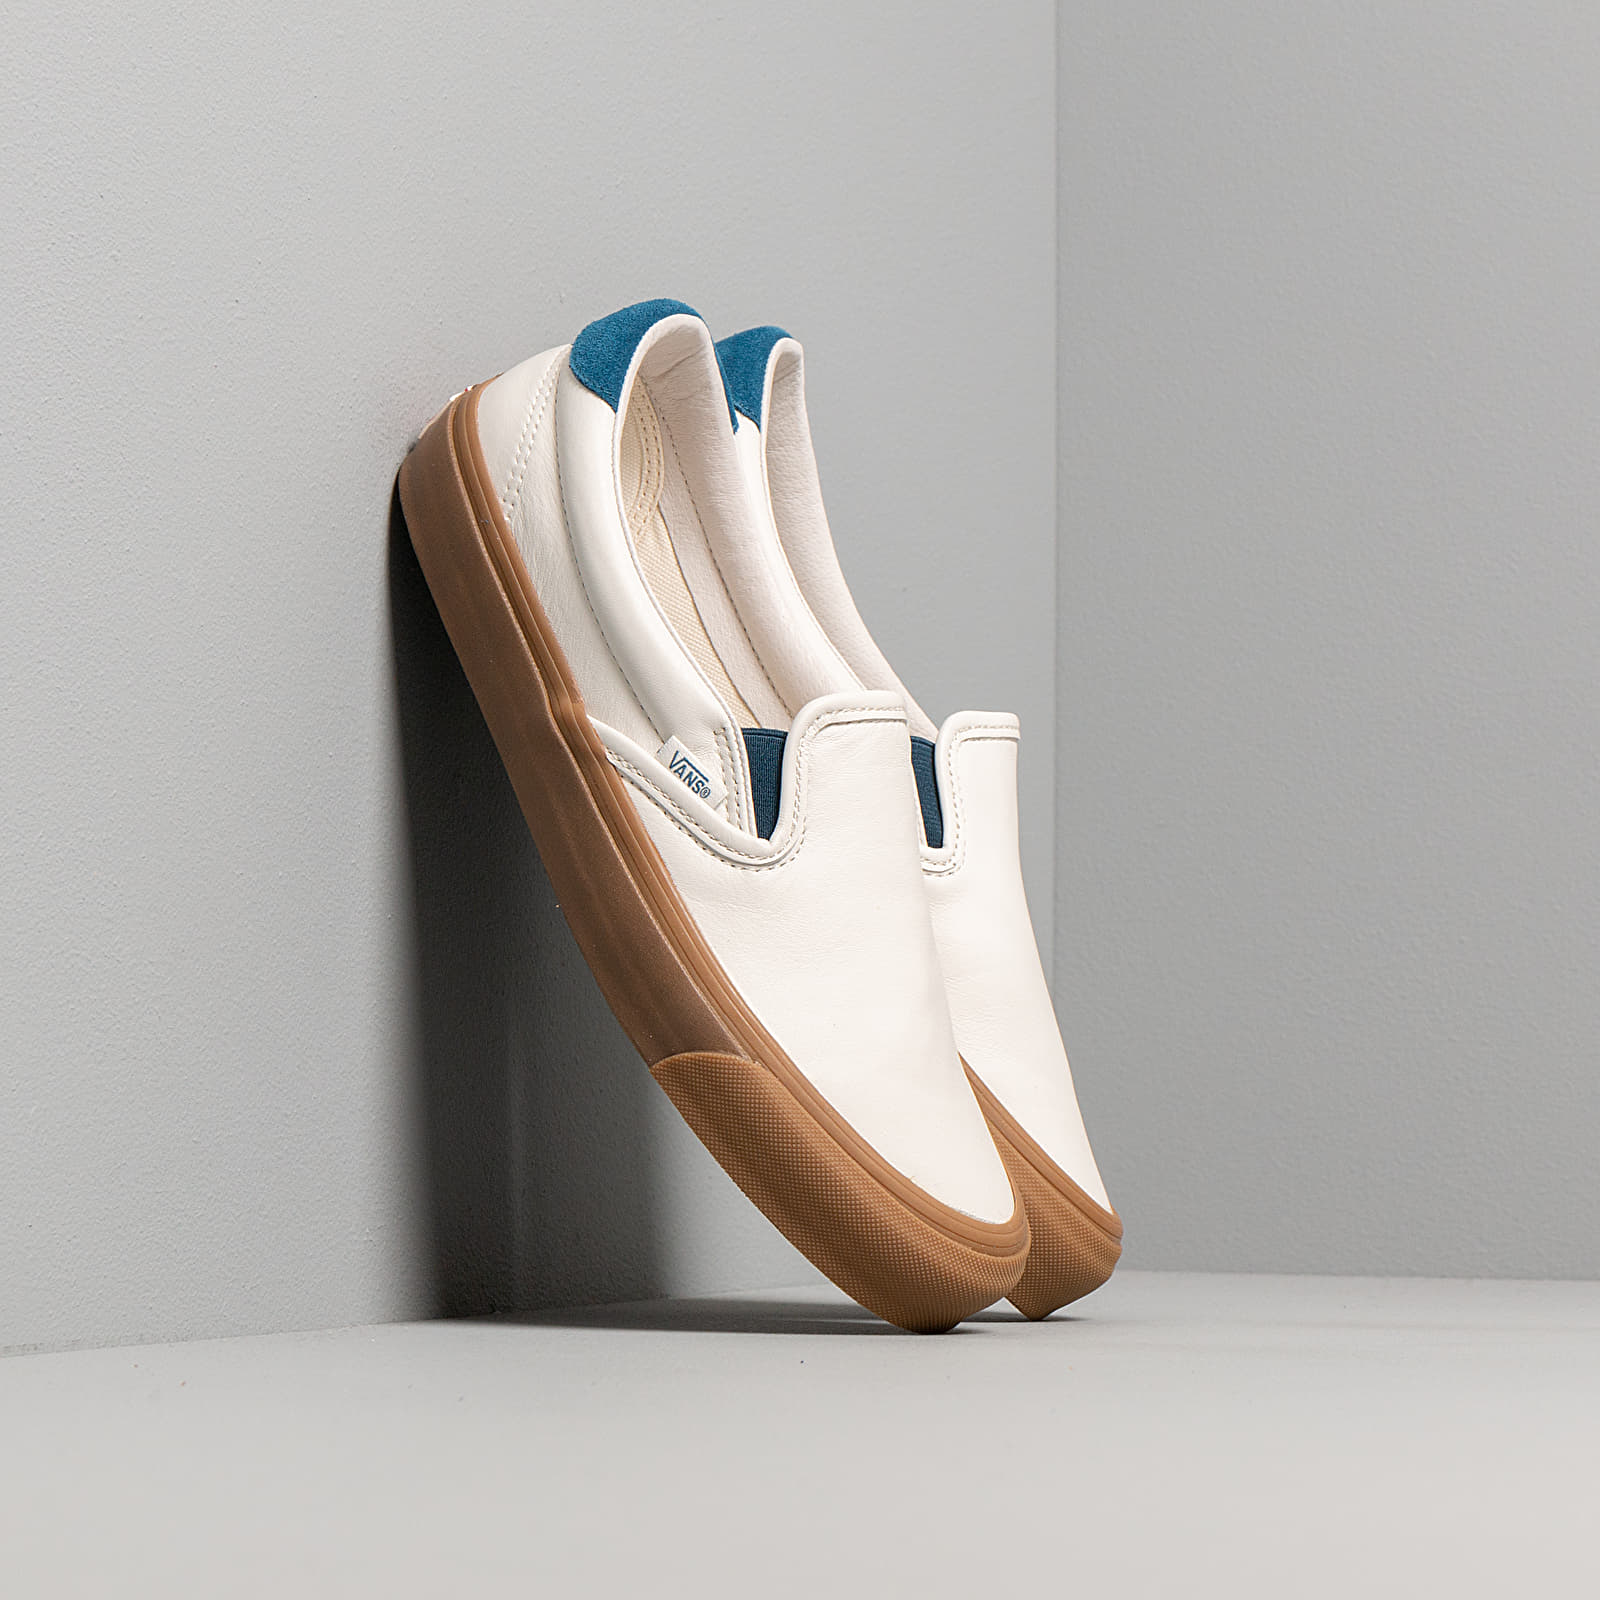 Ανδρικά παπούτσια Vans OG Slip-On 59 LX (Leather/ Suede) Marshmallow